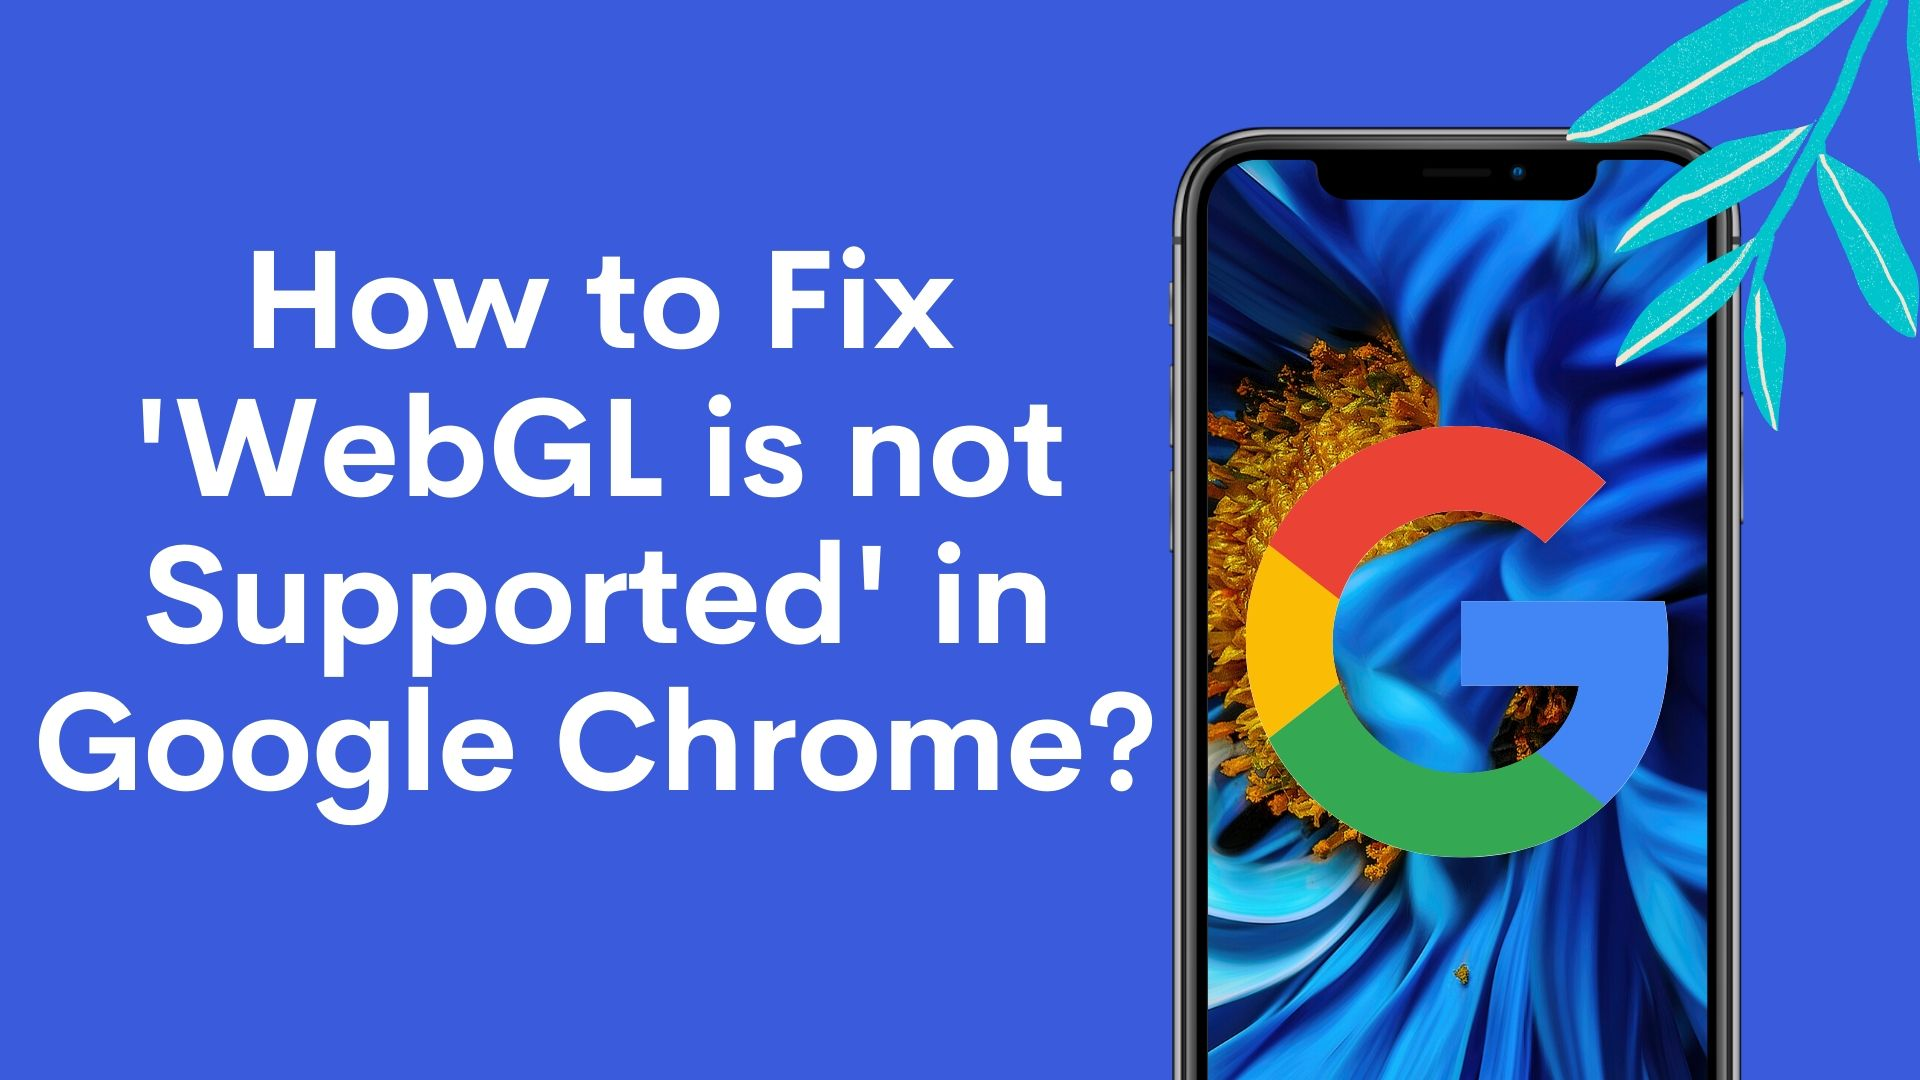 How ro fix WebGL Error in Google Chrome?